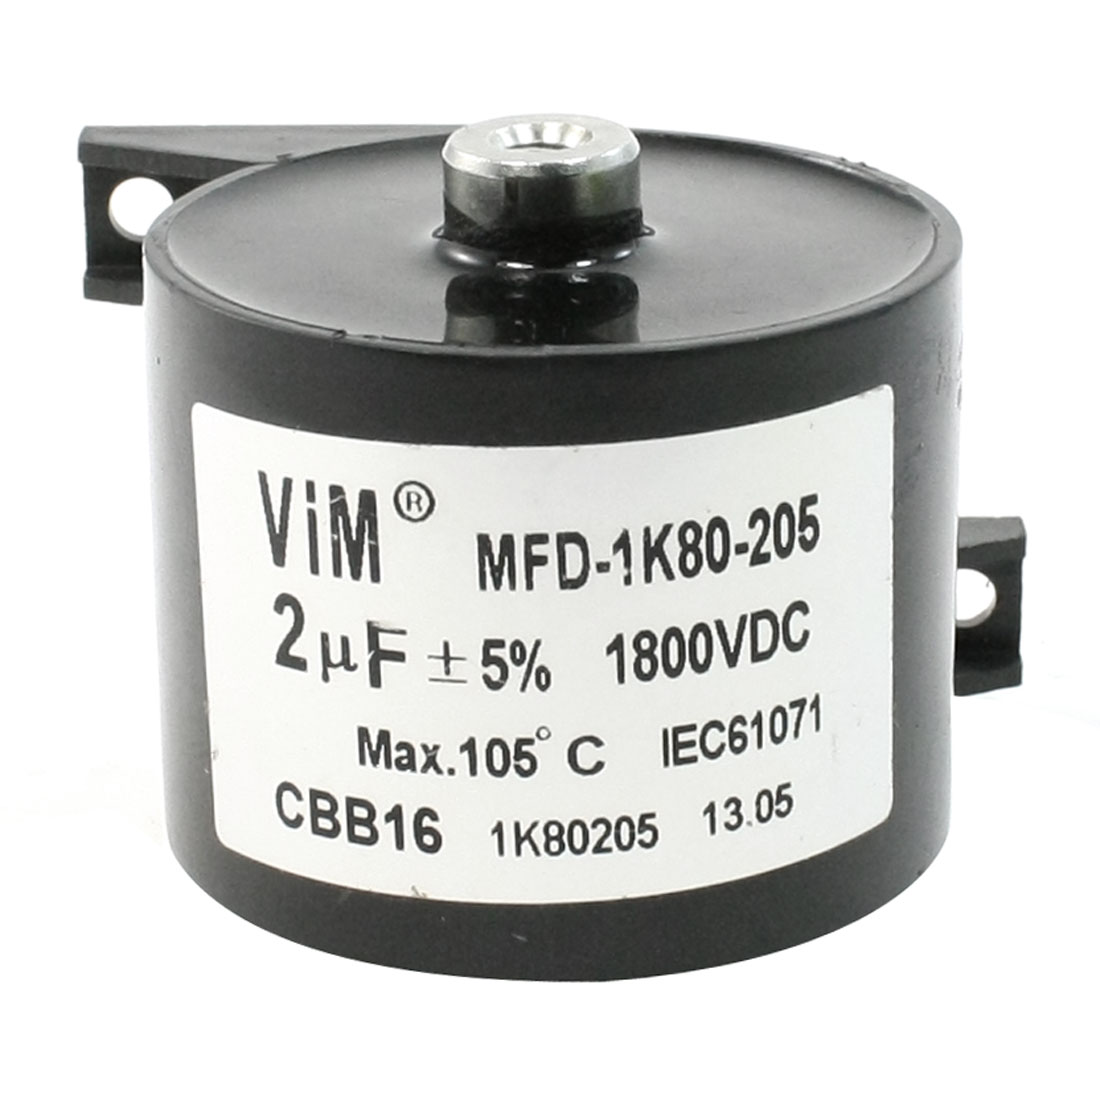 Black Plastic Housing CBB16 2uF 1800VDC Motor Run Capacitor